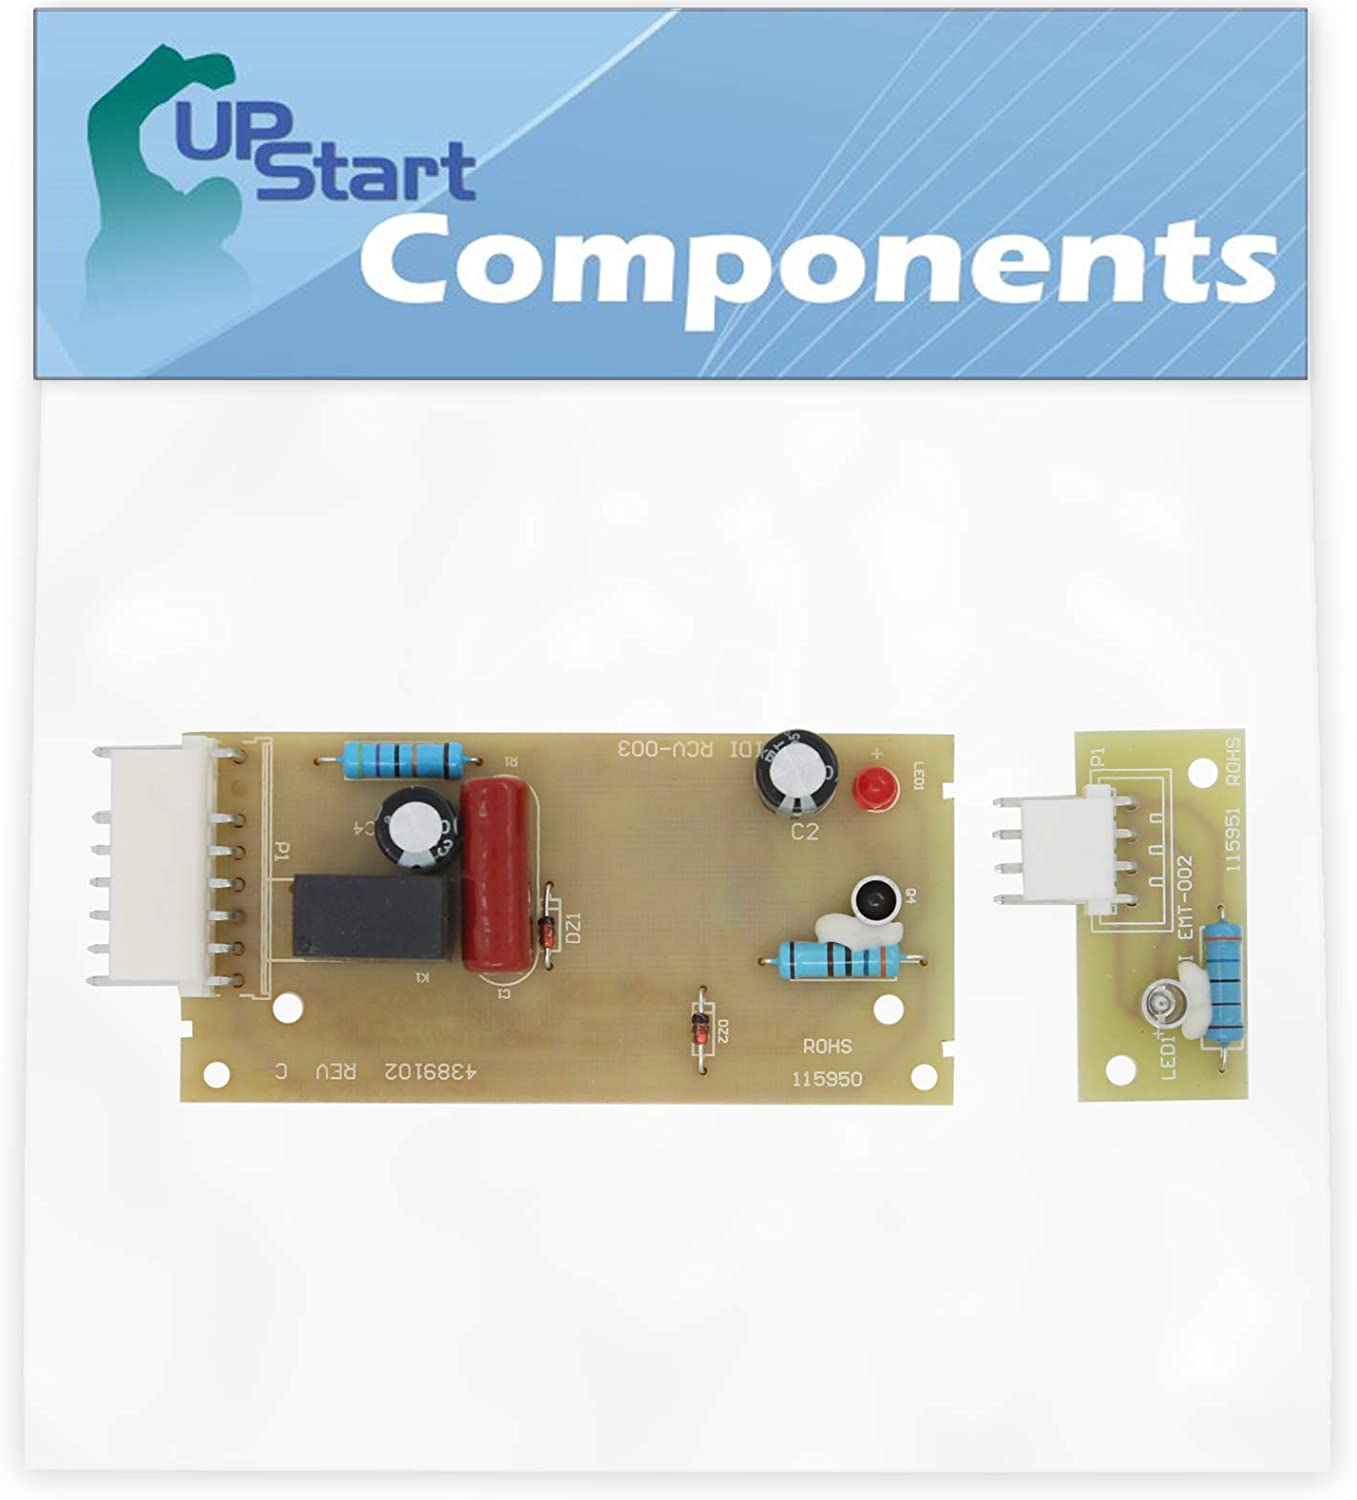 W10757851 Refrigerator Ice Level Control Board Replacement for KitchenAid KSRK25FVMK01 Refrigerator - Compatible with 4389102 Icemaker Emitter Sensor Control Board - UpStart Components Brand